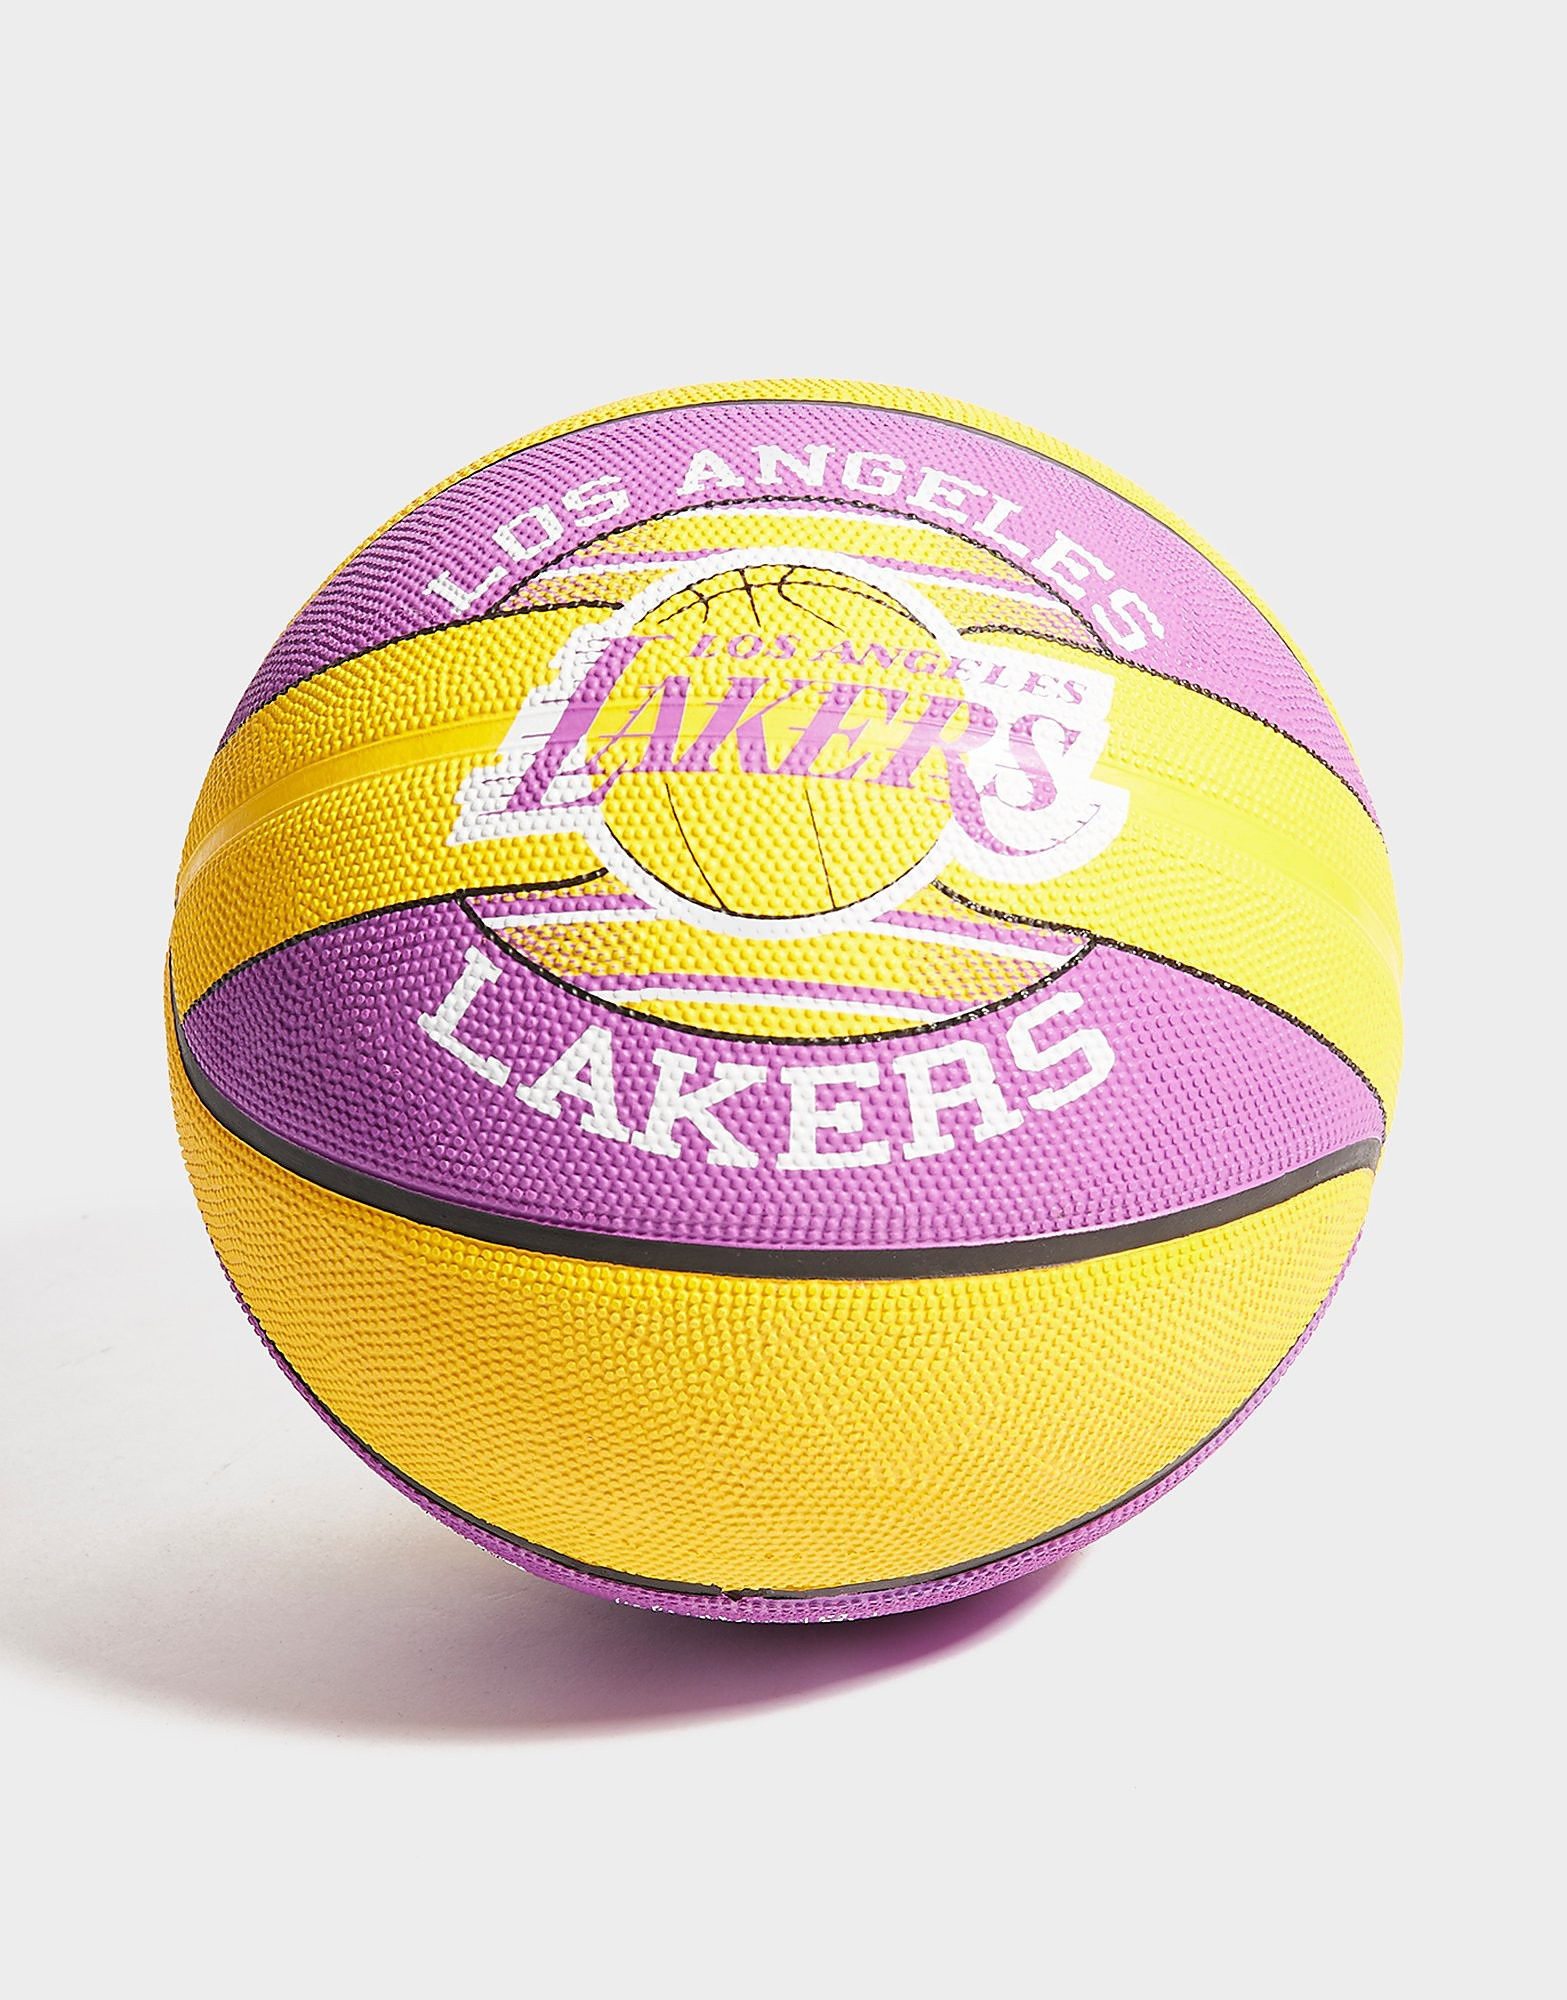 Spalding Team Ball L.A. Lakers Basketball